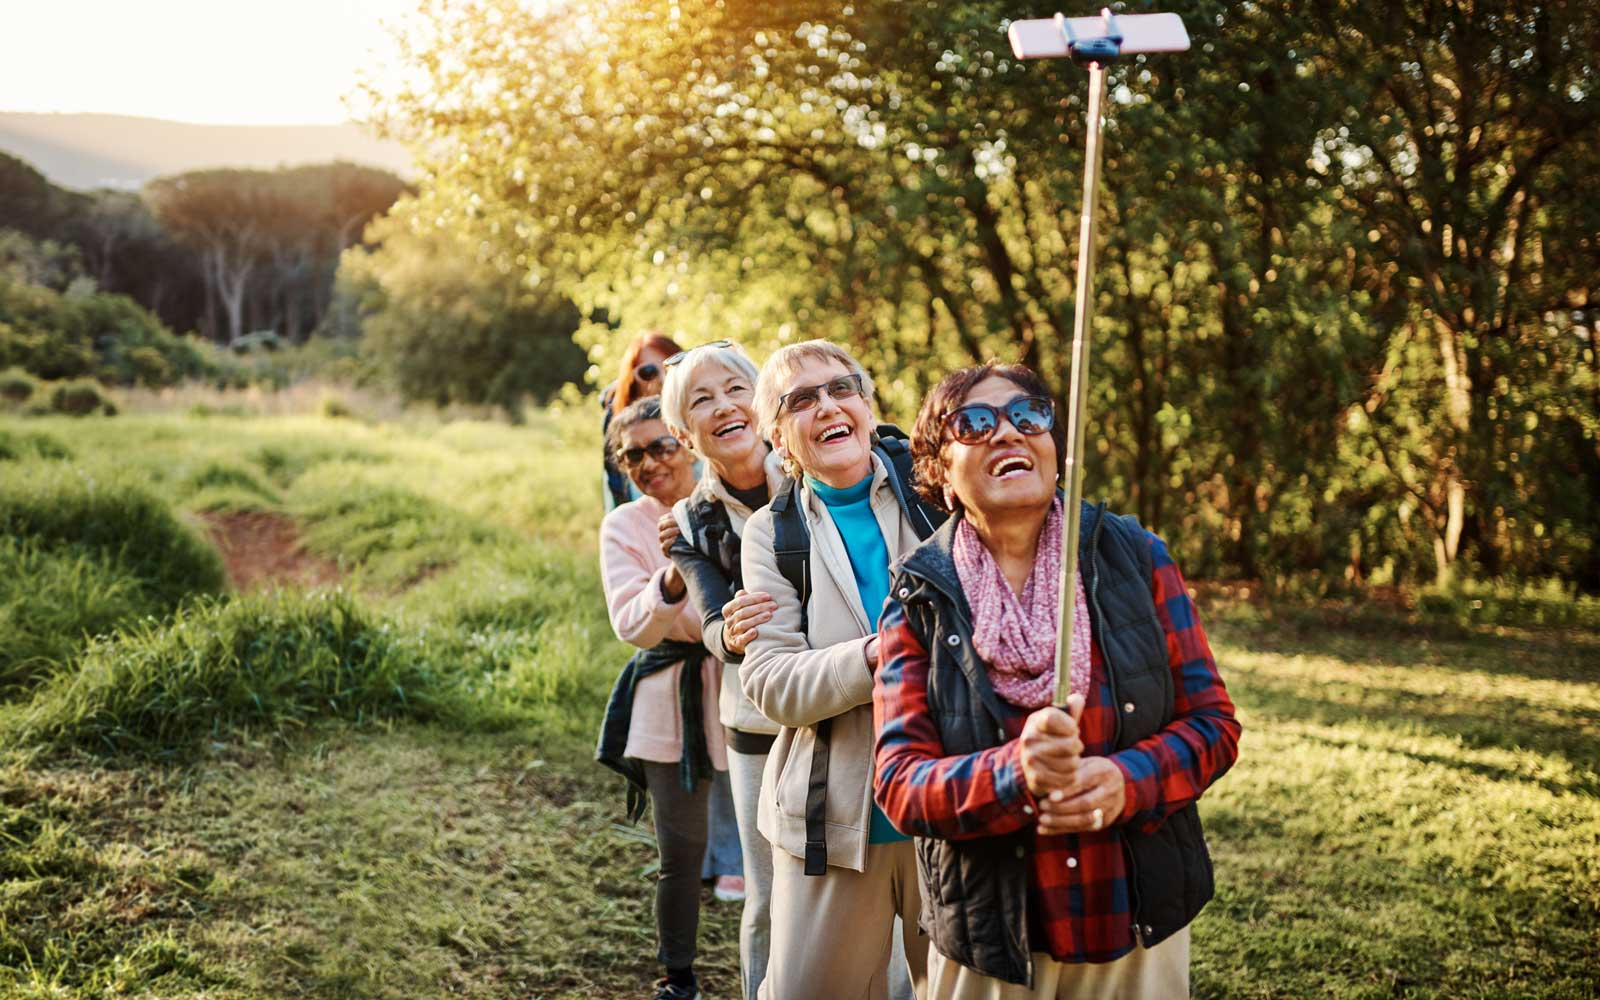 Happy senior women taking selfies during a hike in the great outdoors